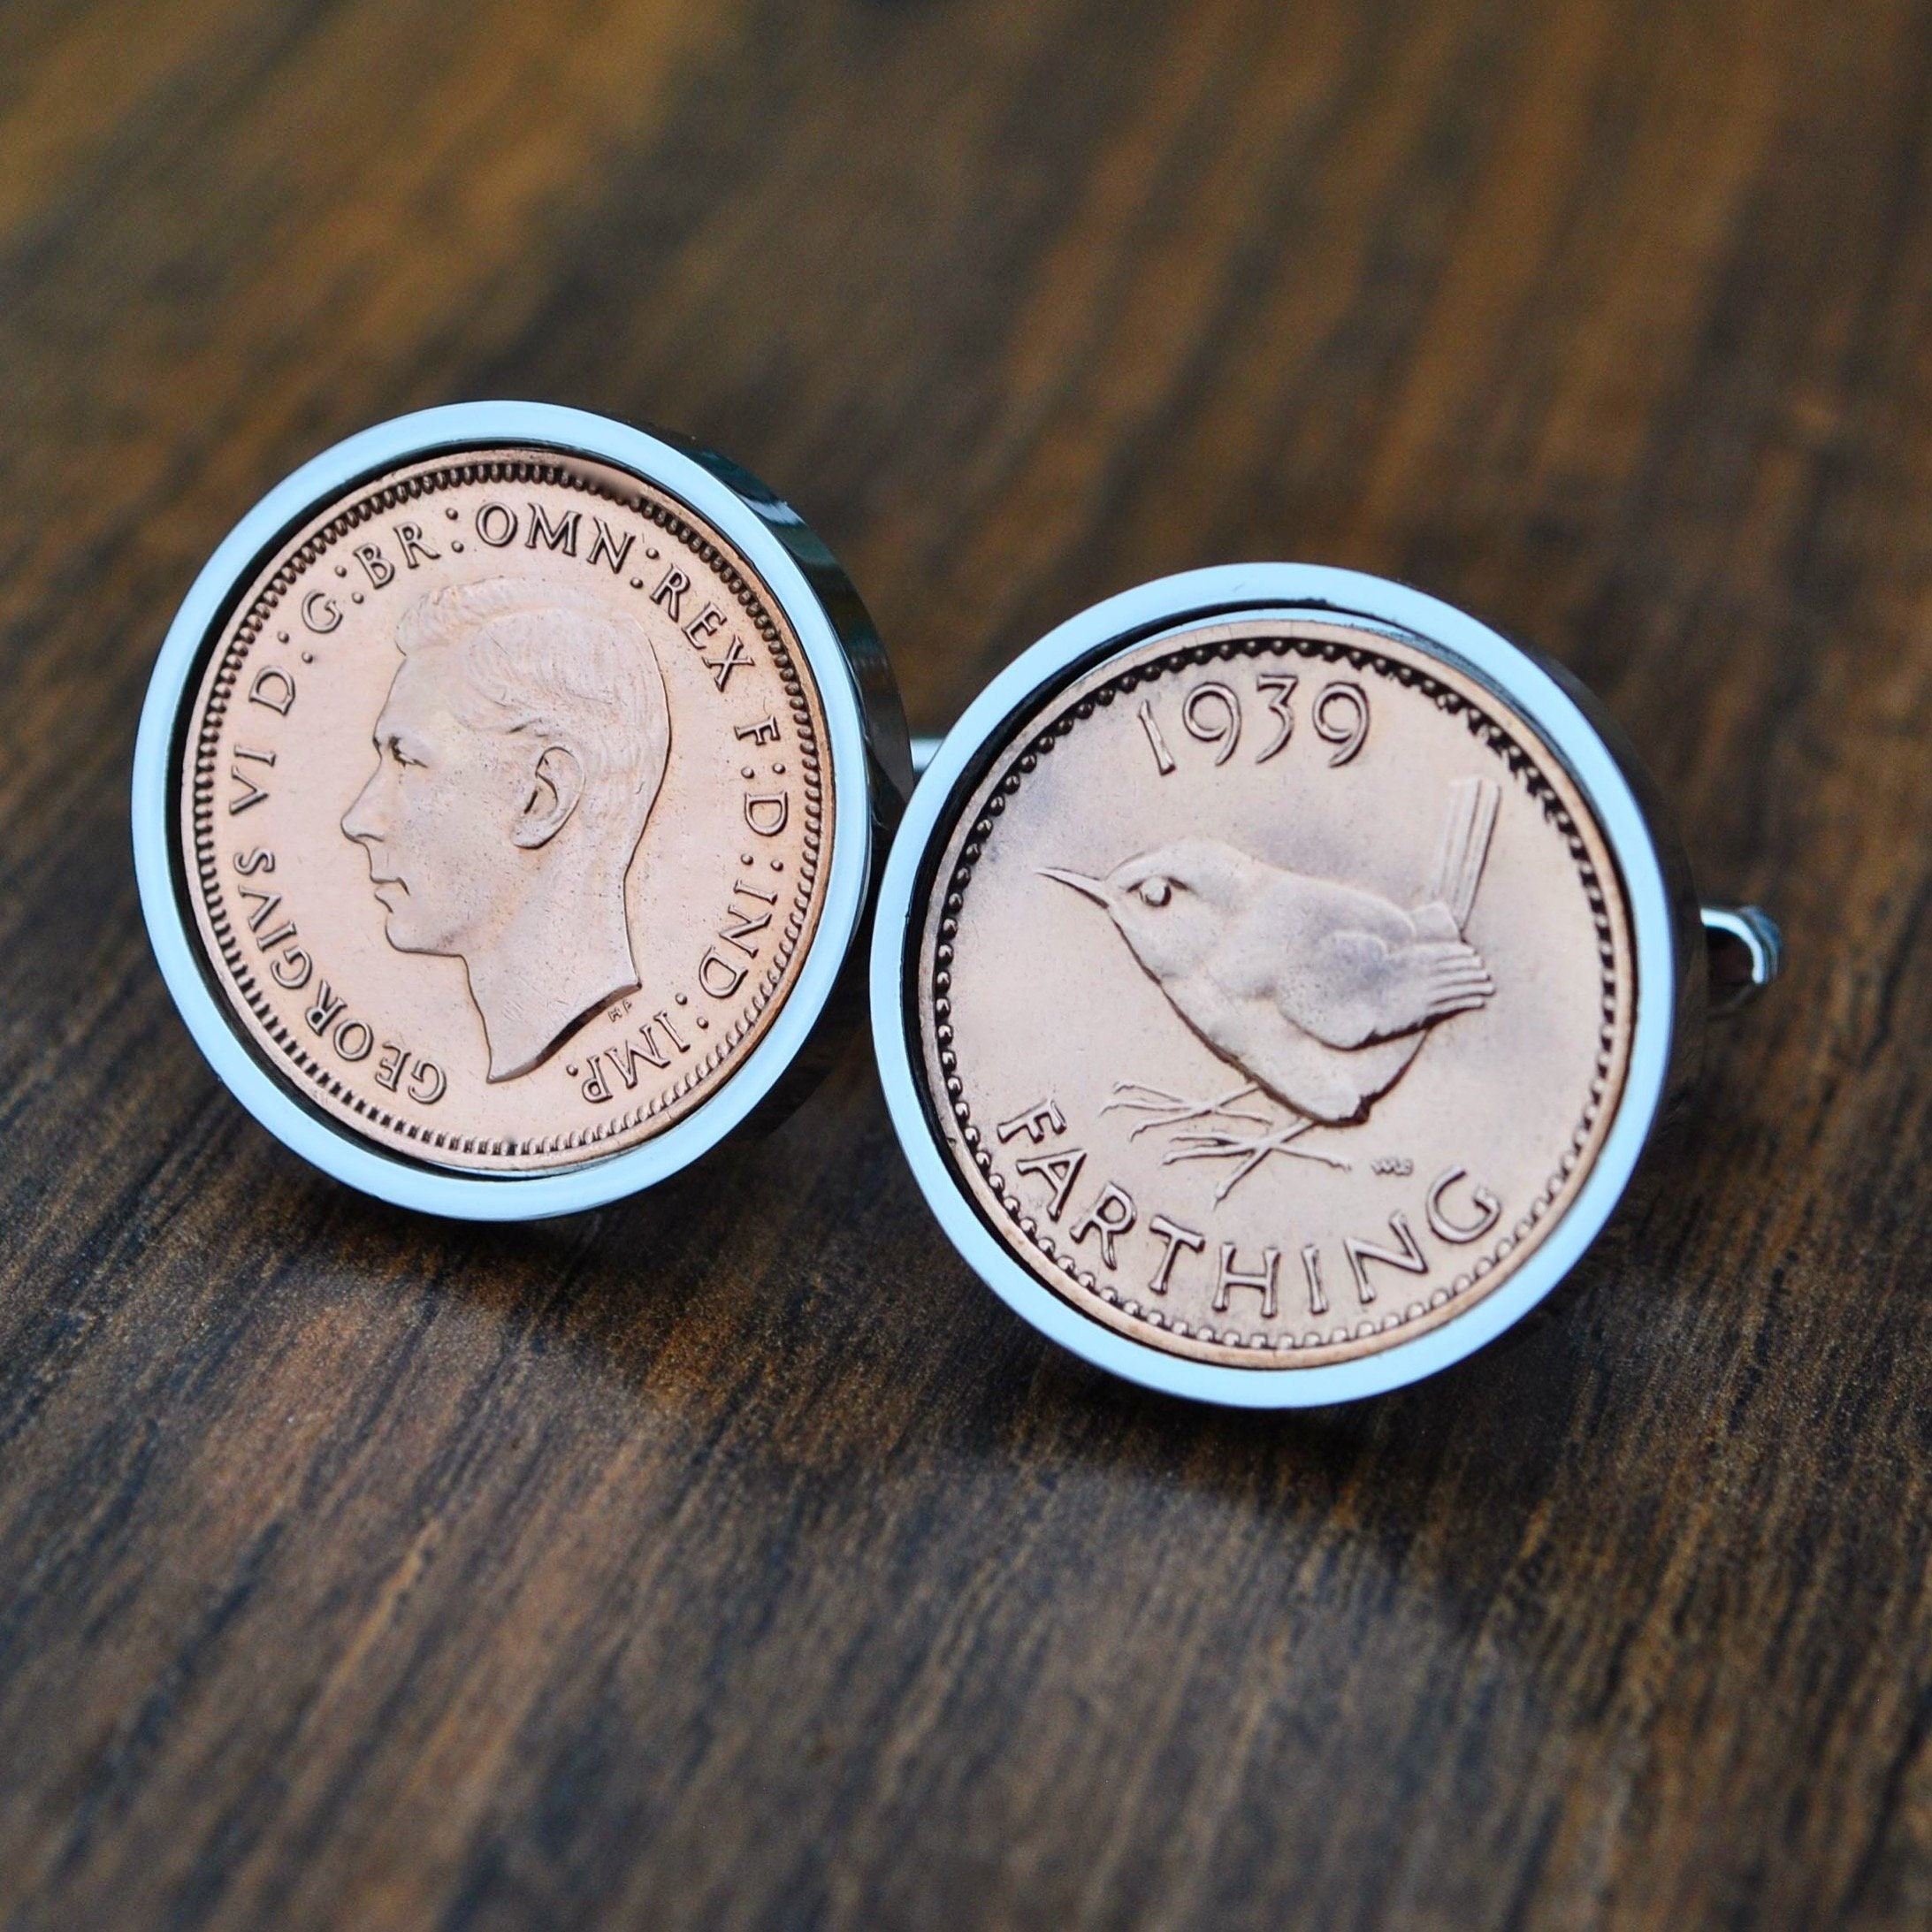 1939 80th Cufflinks, 80th Coin Cufflinks, 80th Birthday, 80th Gift 1939, Farthing Cufflinks, Dad 80th Gift, Grandad 80th Gift